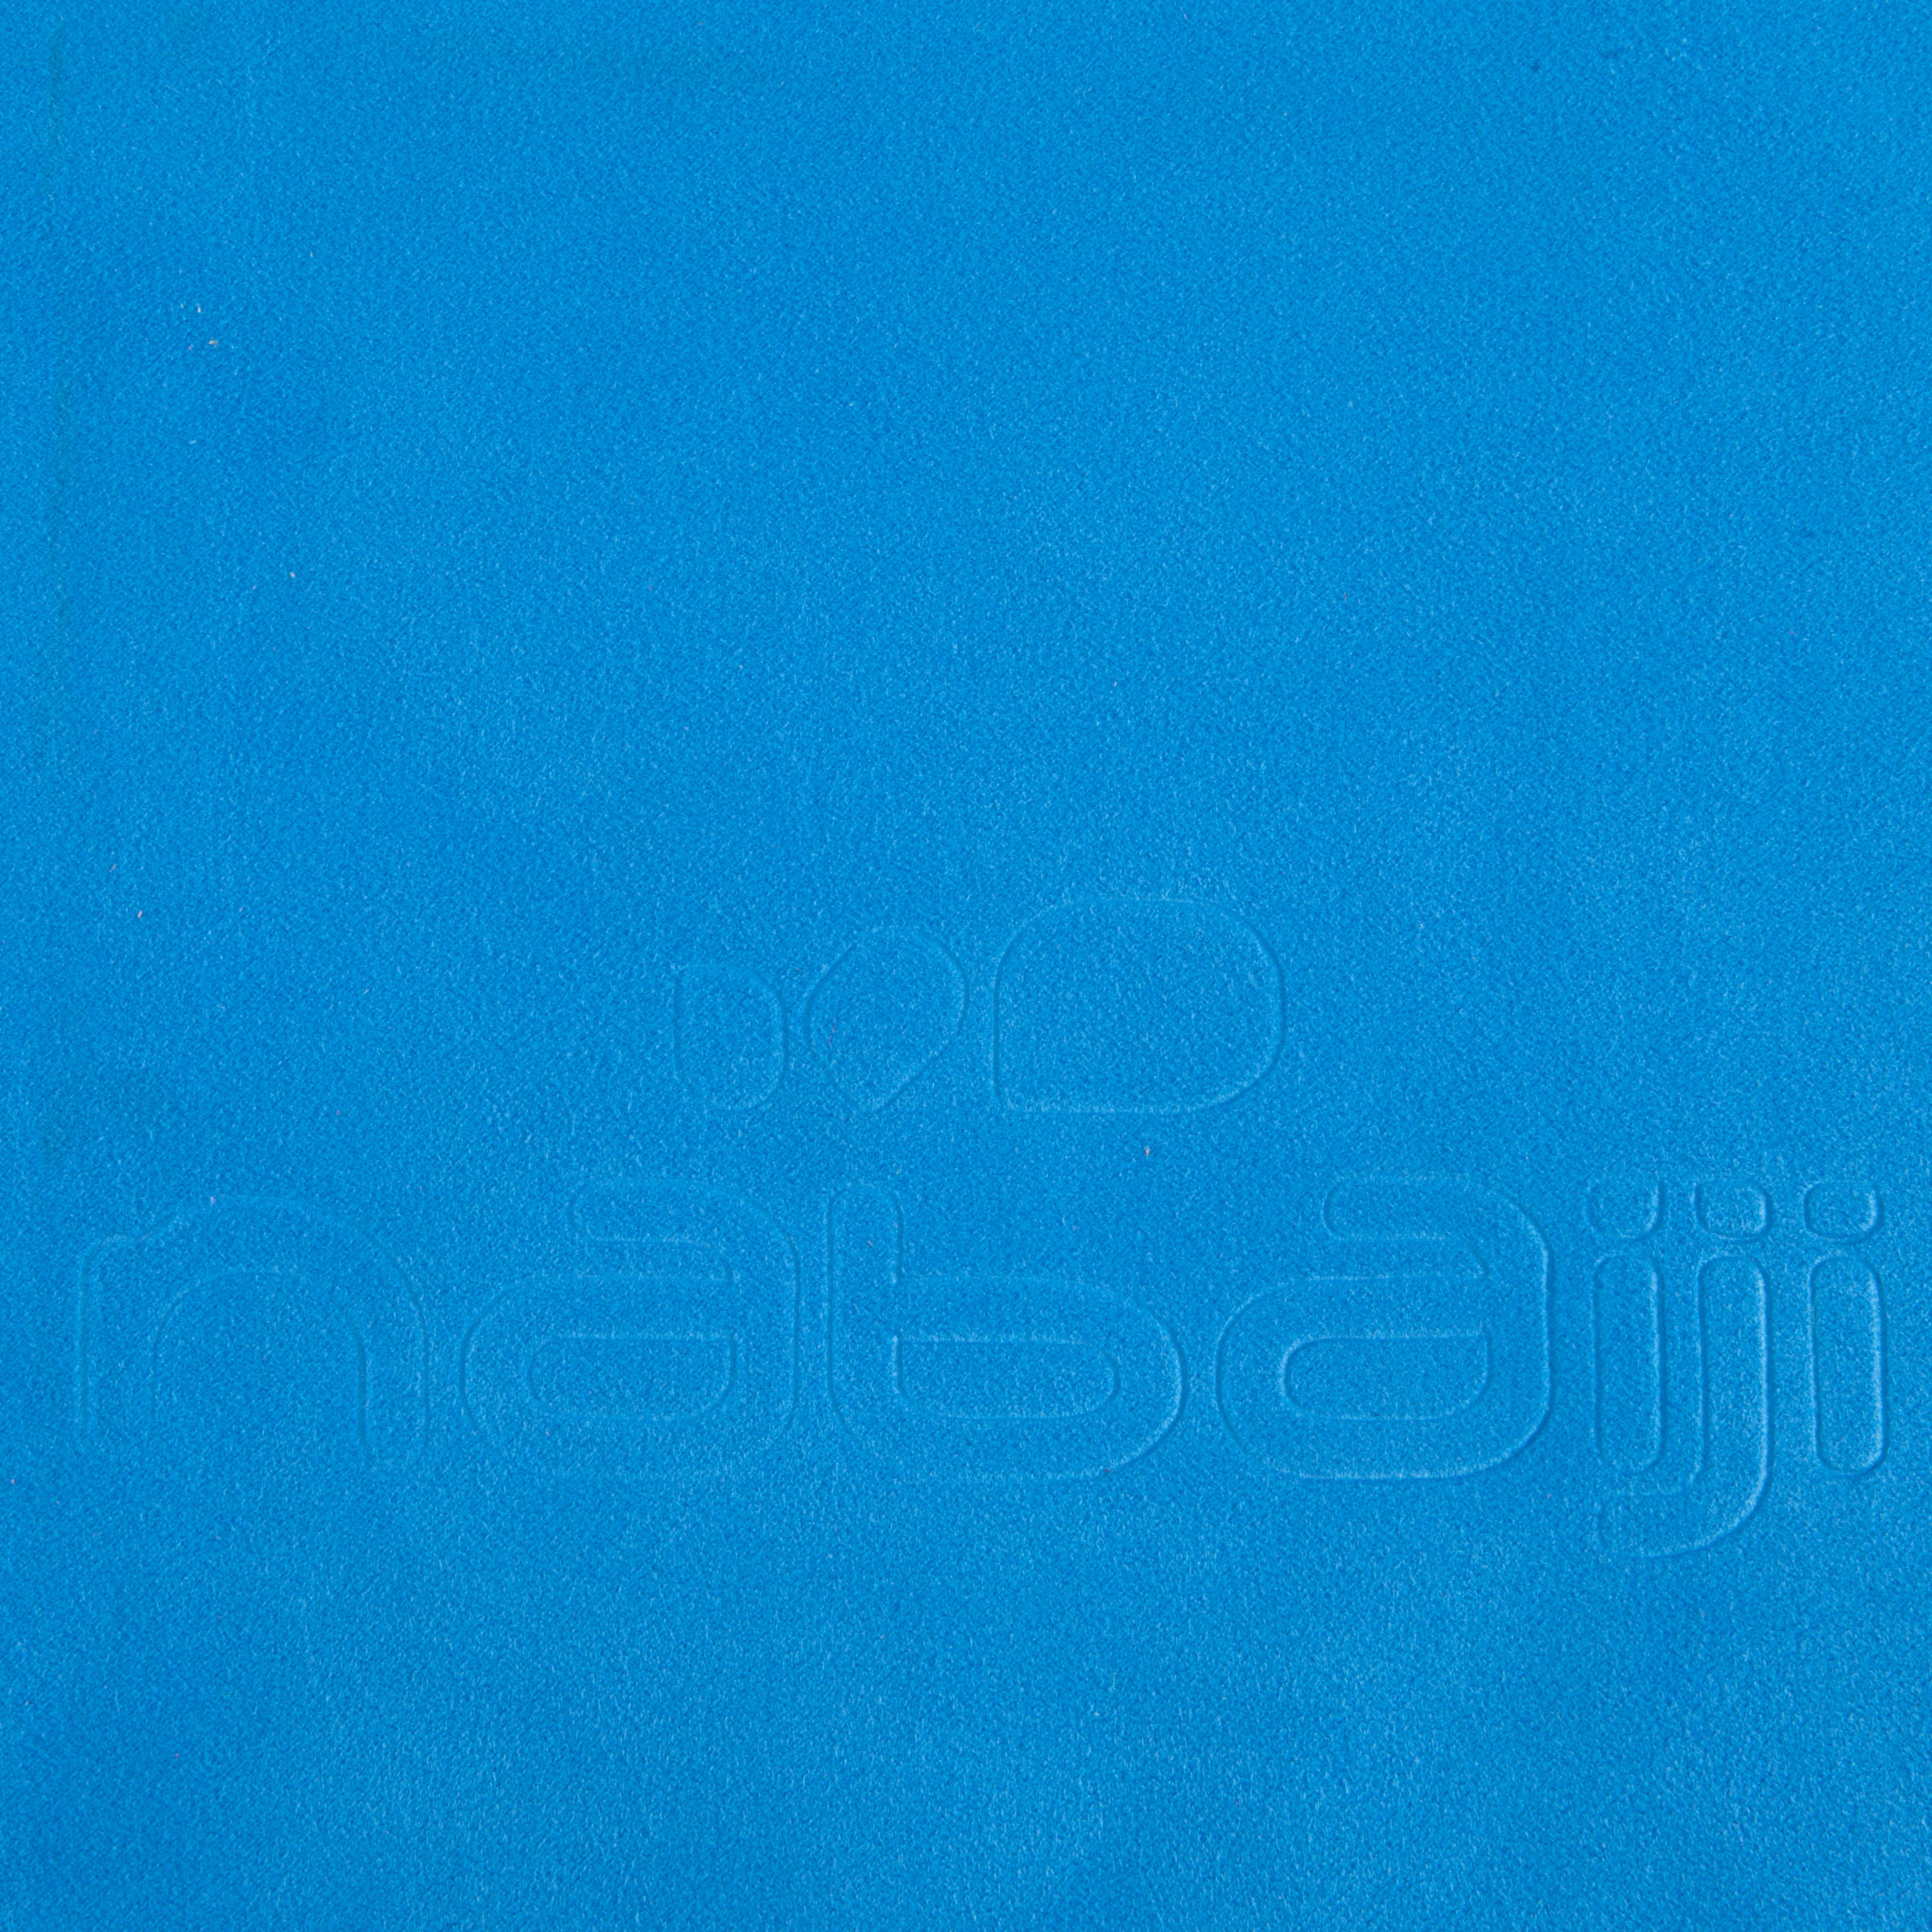 Ultra compact microfibre towel size L 80 x 130 cm - China Blue